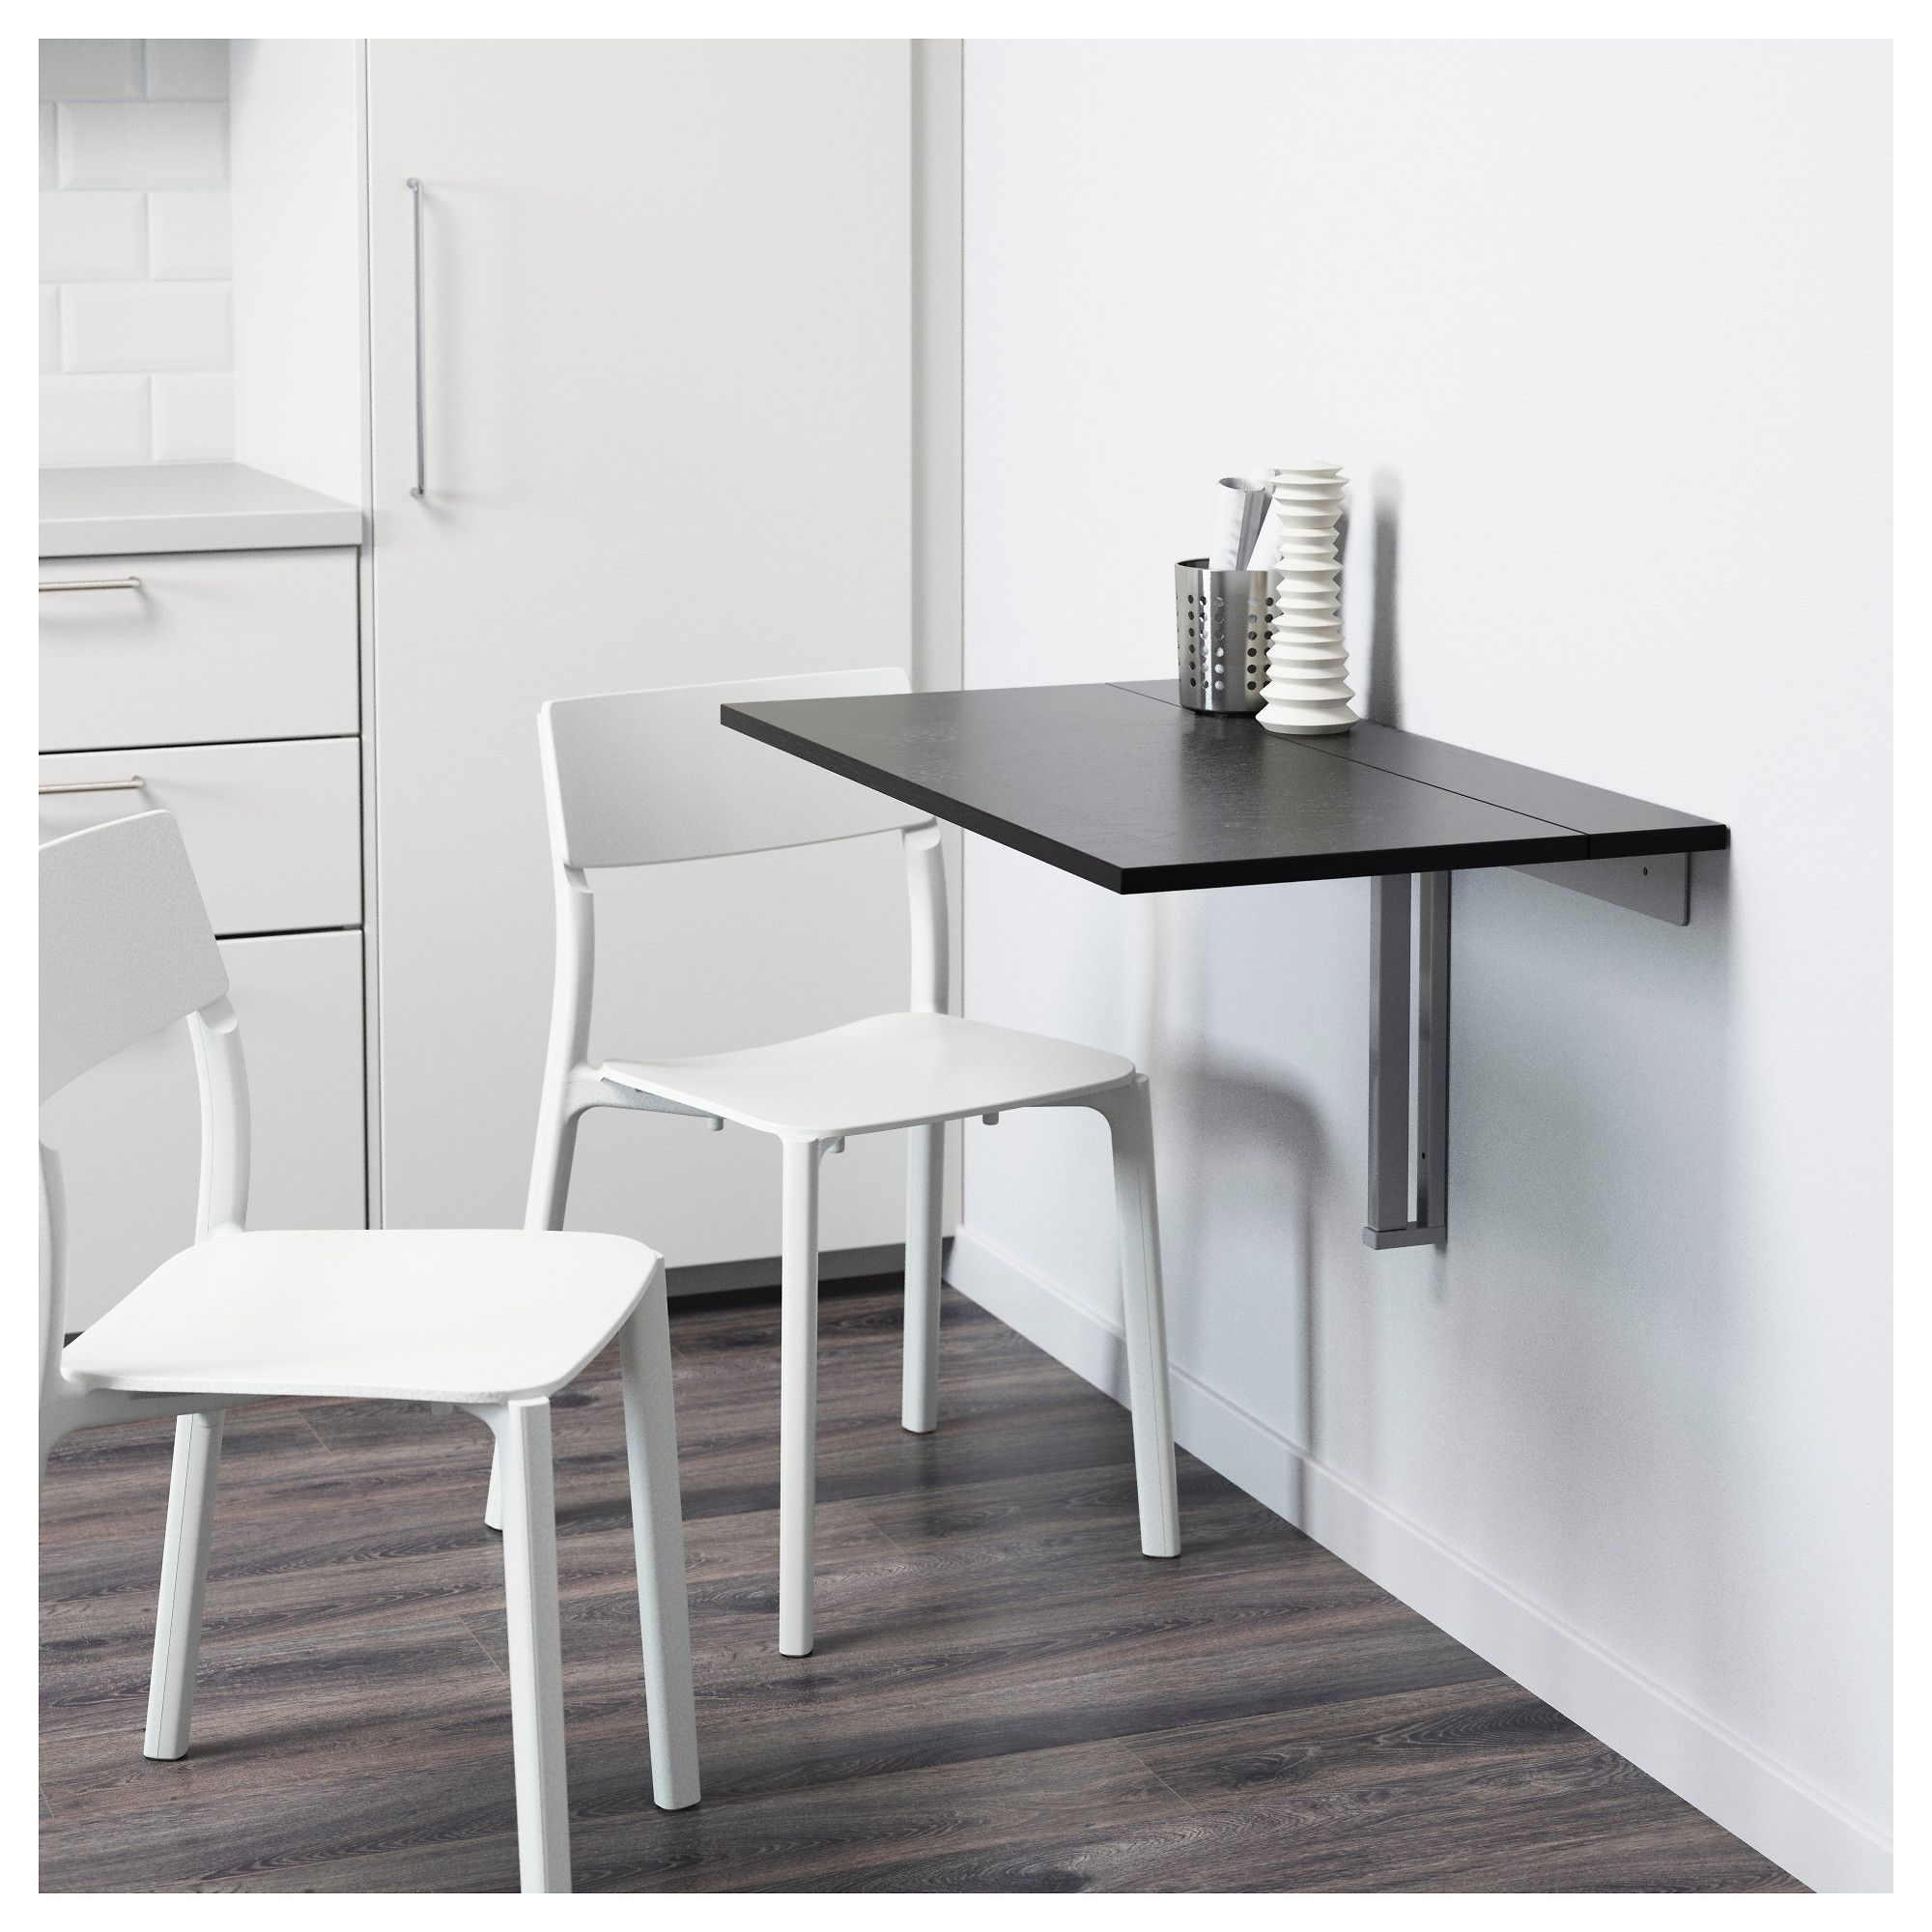 BJURSTA Wall-mounted drop-leaf table Brown-black IKEA | Cocina ...